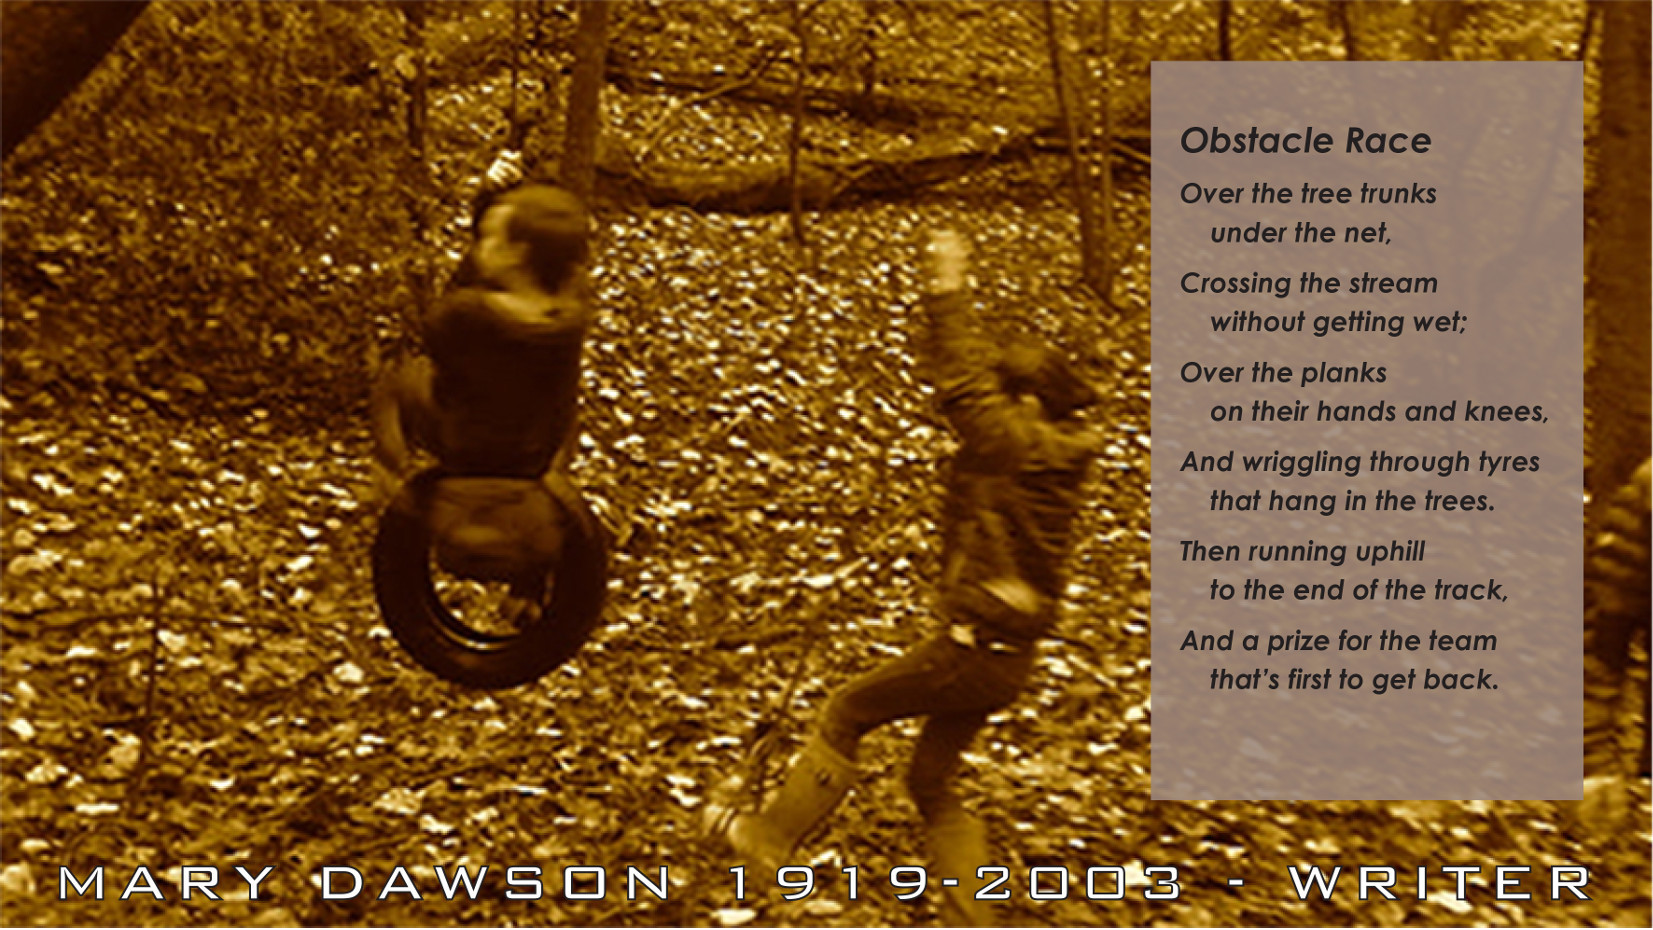 Obstacle Race. Crossing the stream without getting wet; Over the planks on their hands and knees, and wriggling through tyres that hang in the trees. Poem by Mary Dawson Jeffries UK.